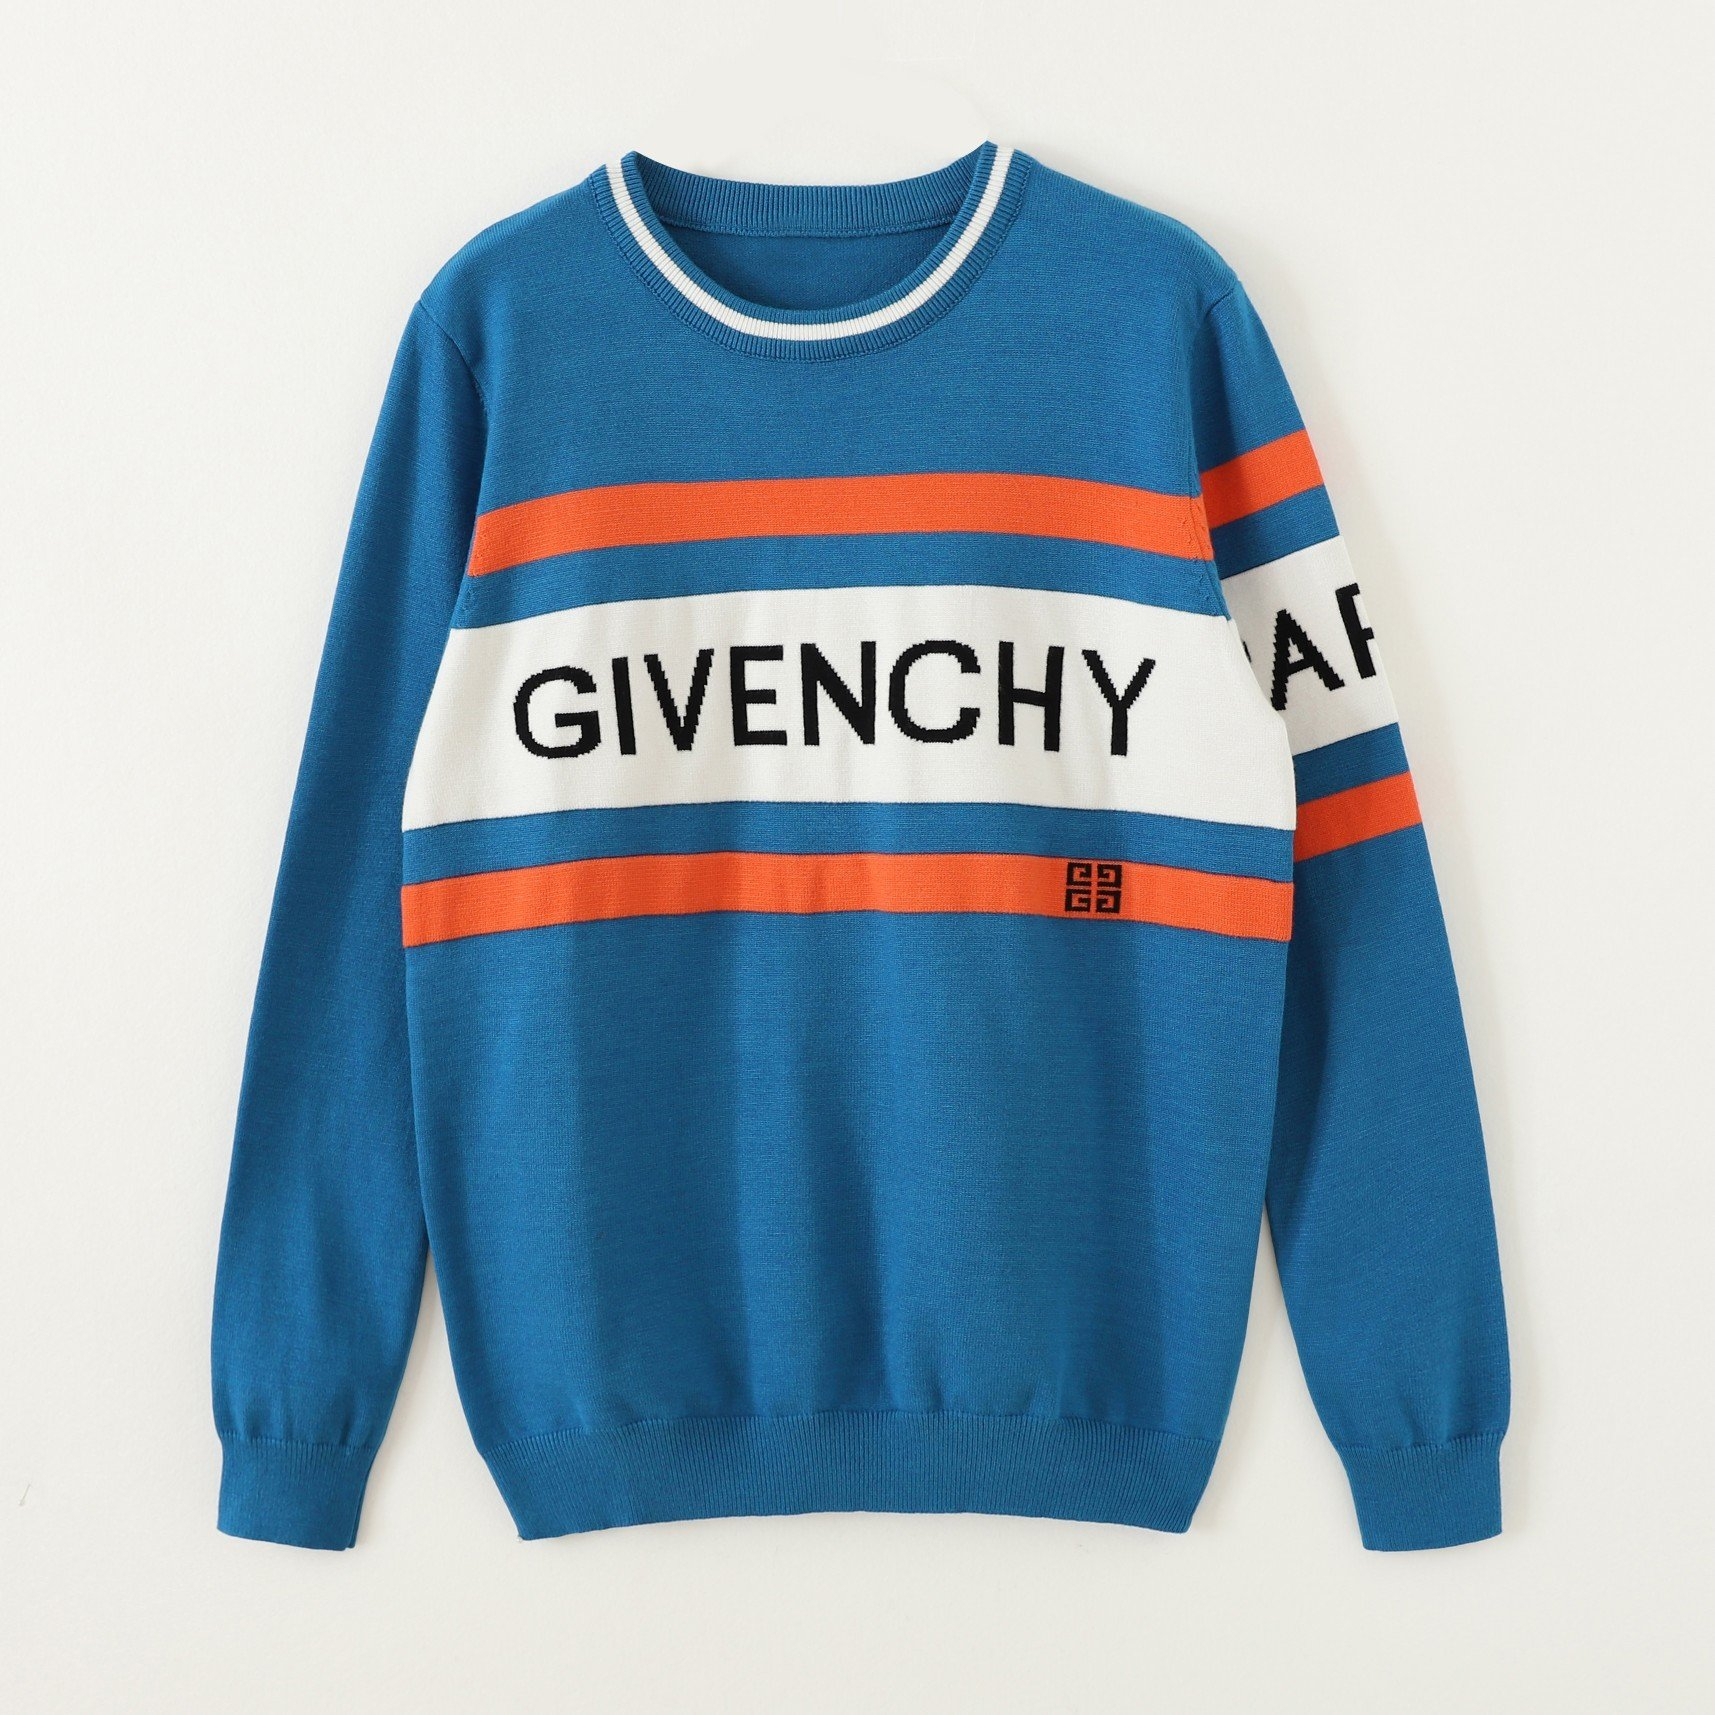 Image of Givenchy Fashion casual loose turtleneck  Fall Winter Fashion Long Sleeve Pullover